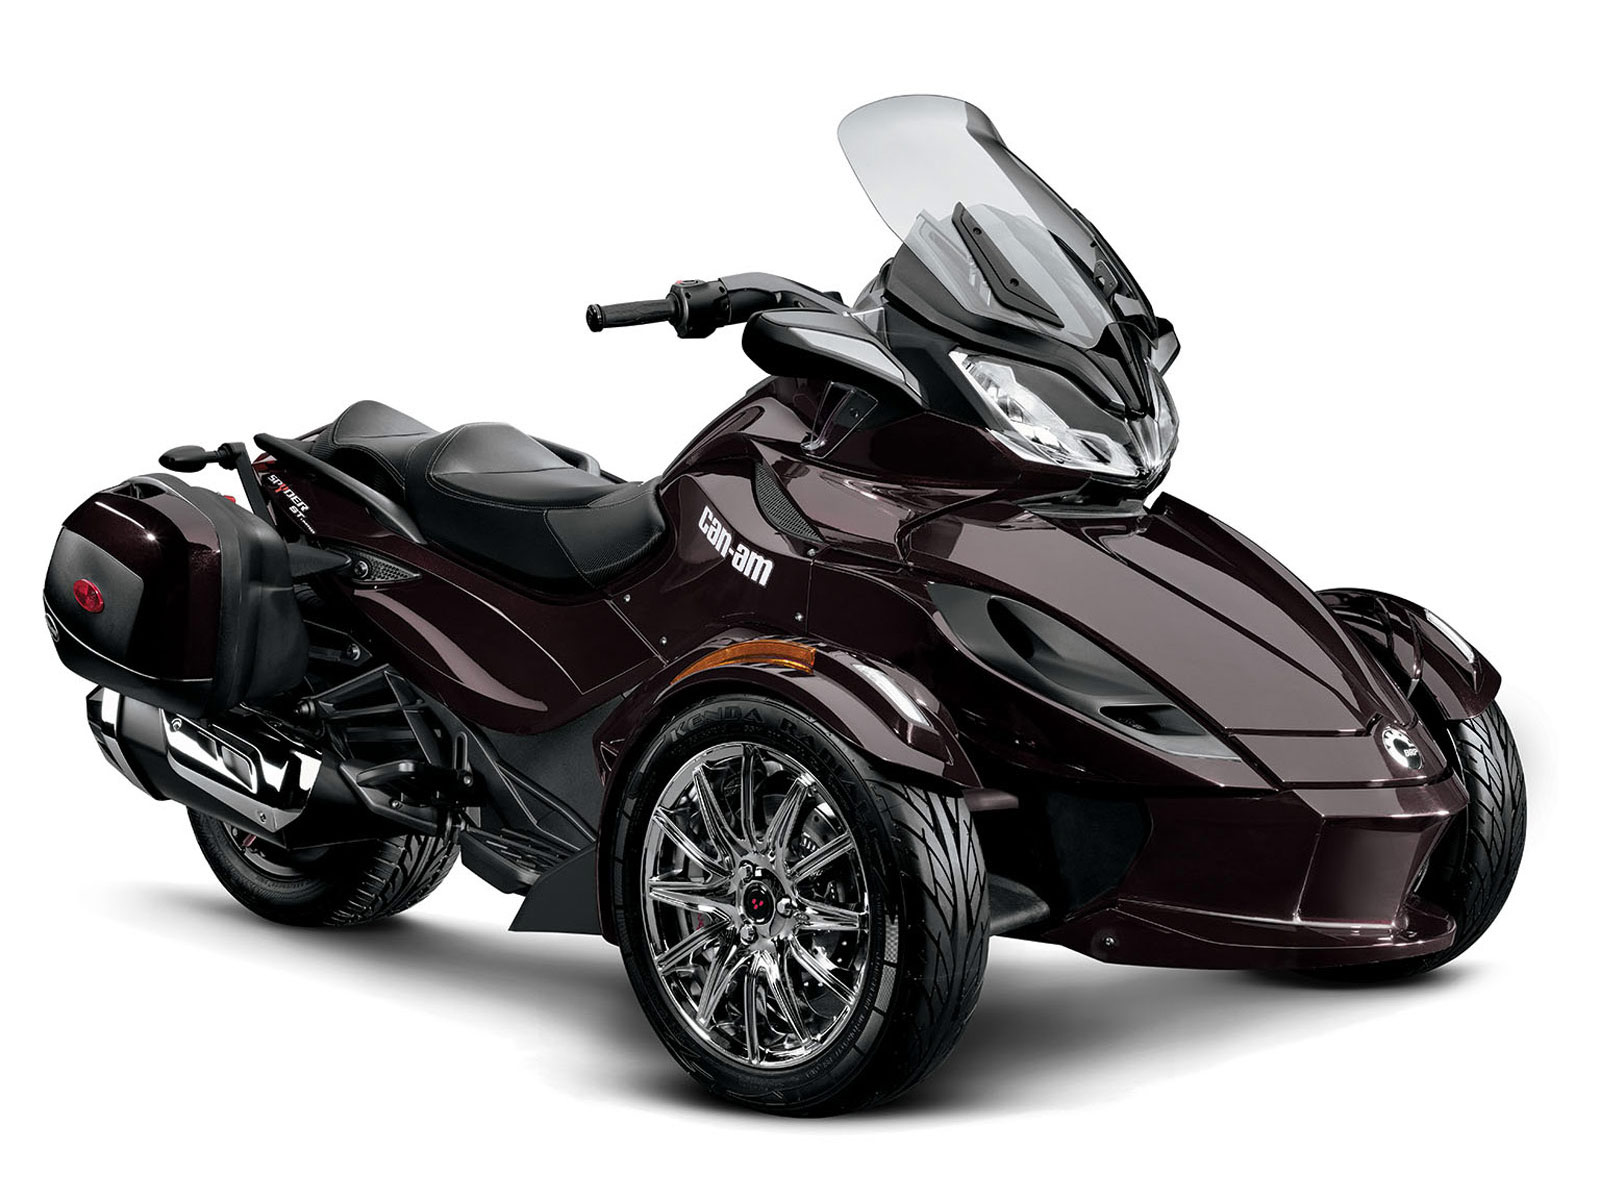 2013 can am spyder st limited motorcycle photos and specs for Can am spyder motor